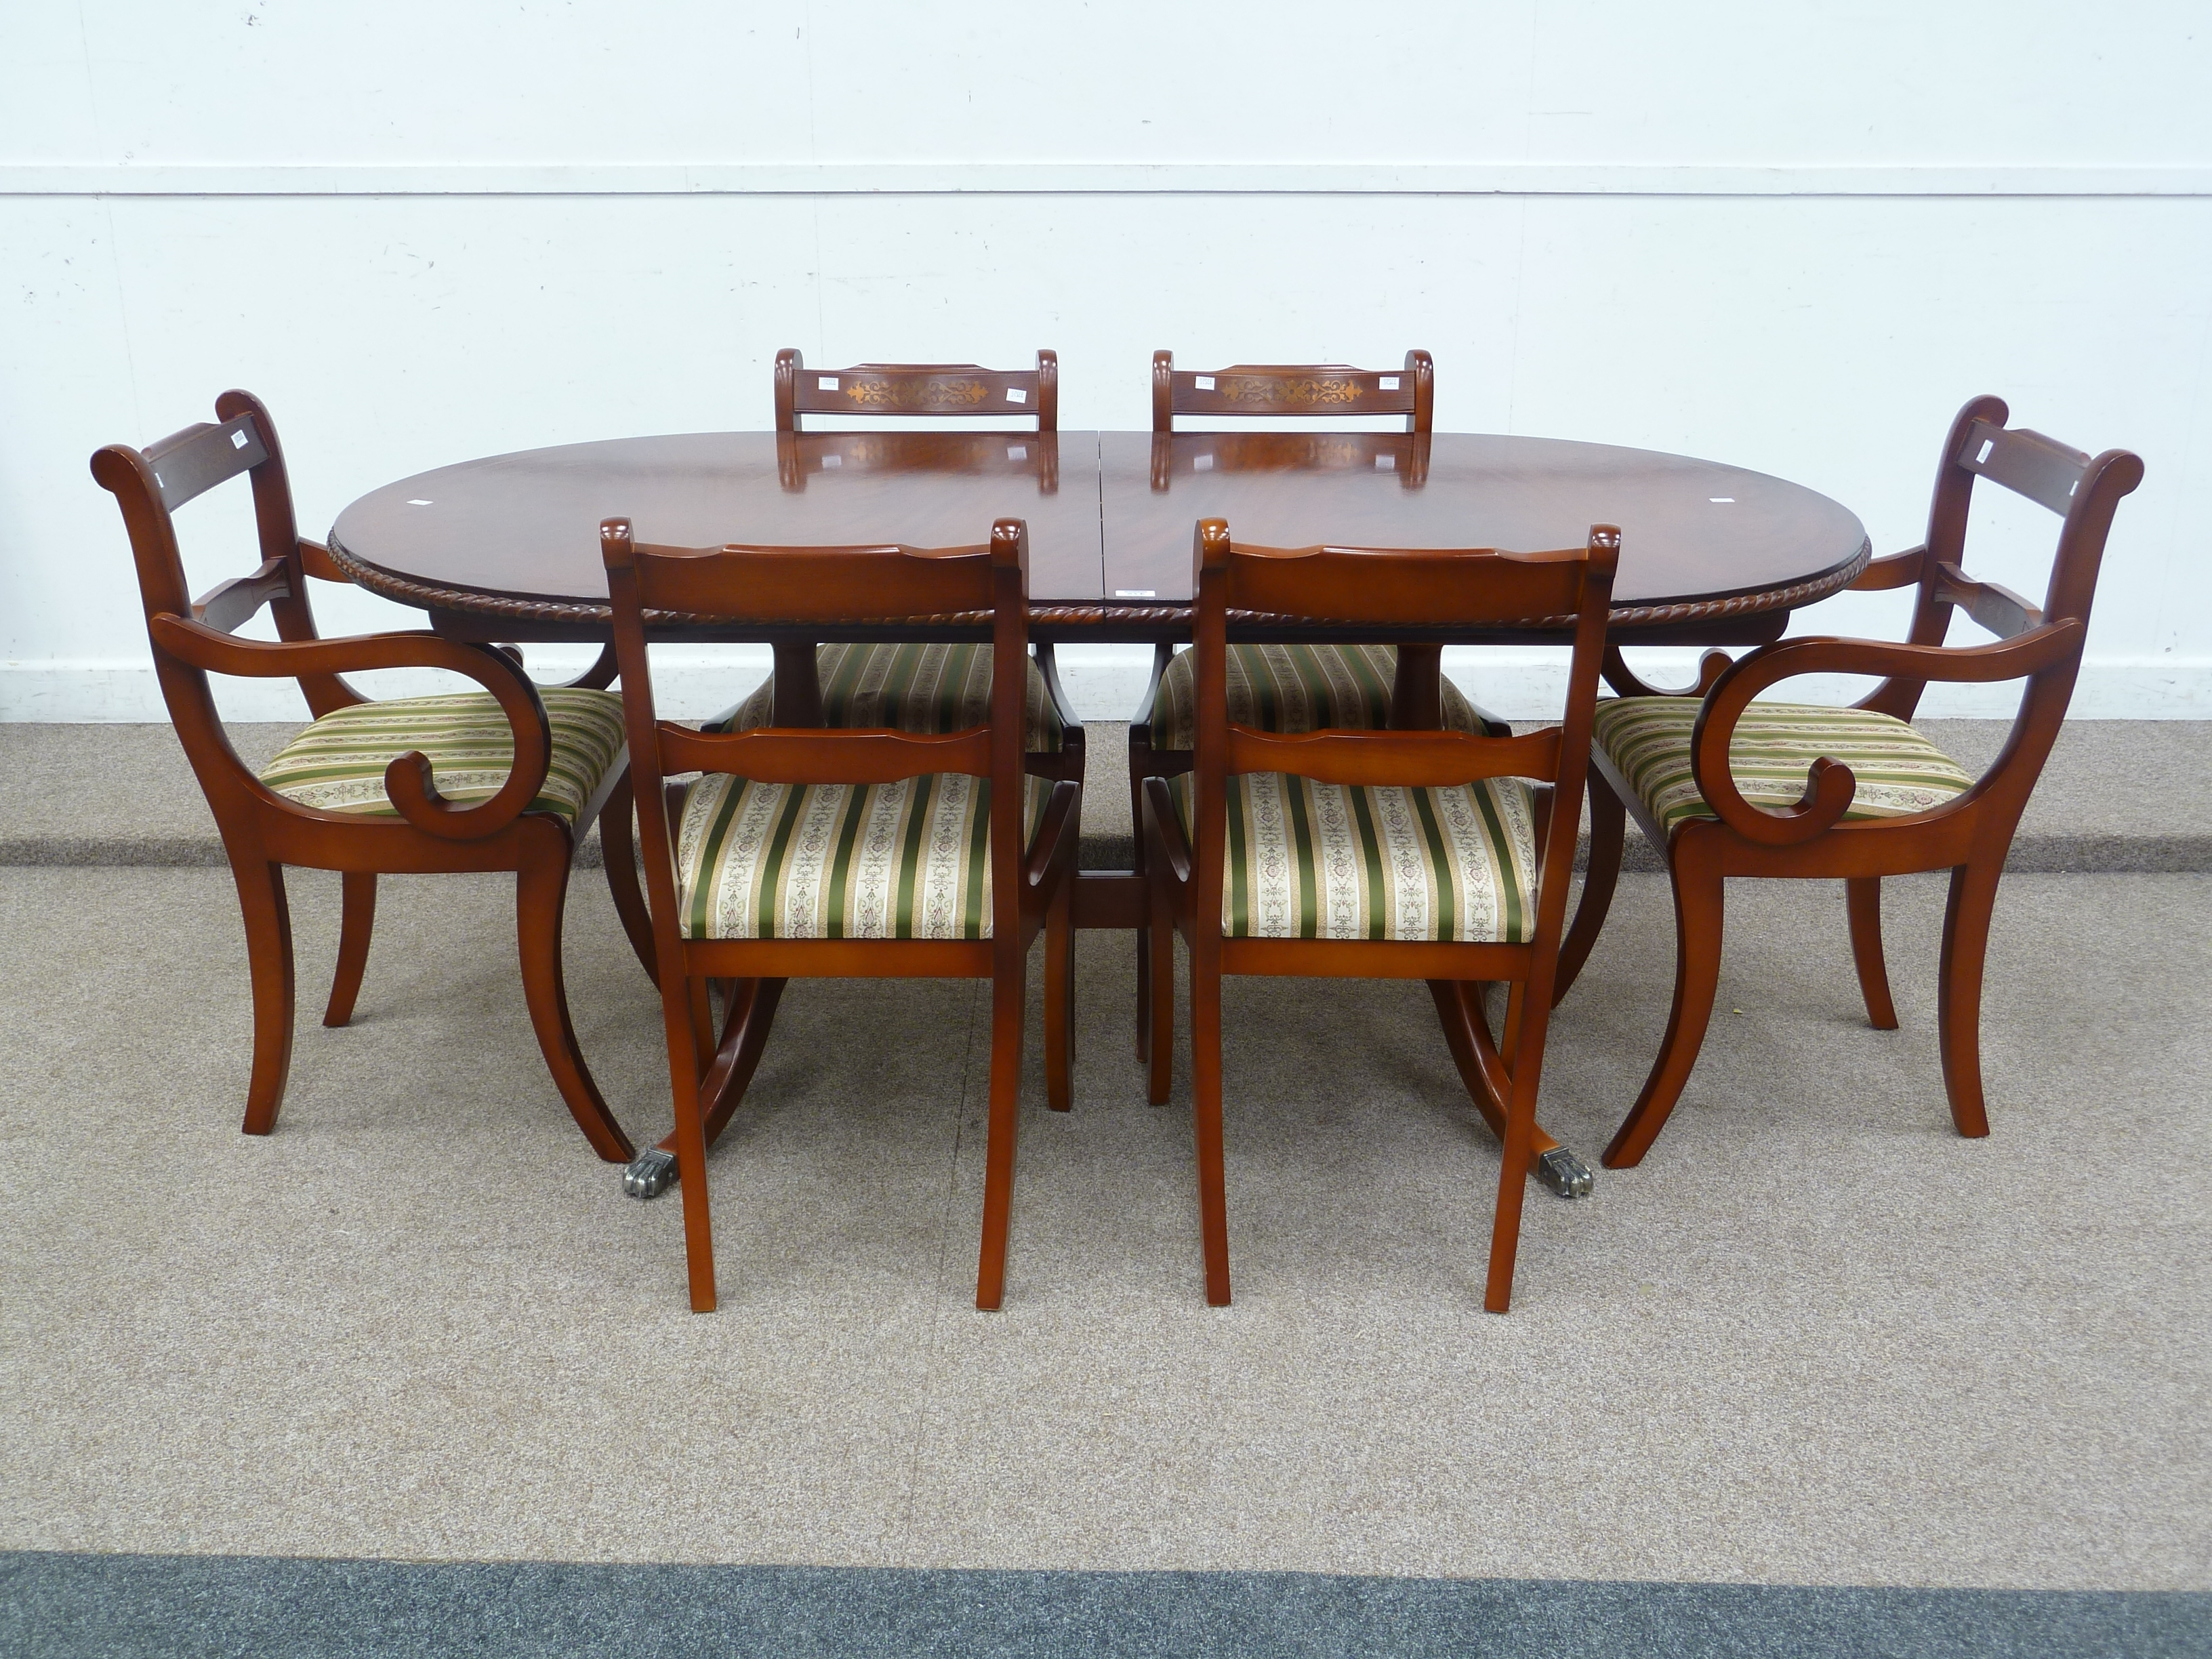 Beresford & Hicks Regency Style Reproduction Mahogany Extending Within Fashionable Mahogany Extending Dining Tables (View 4 of 25)